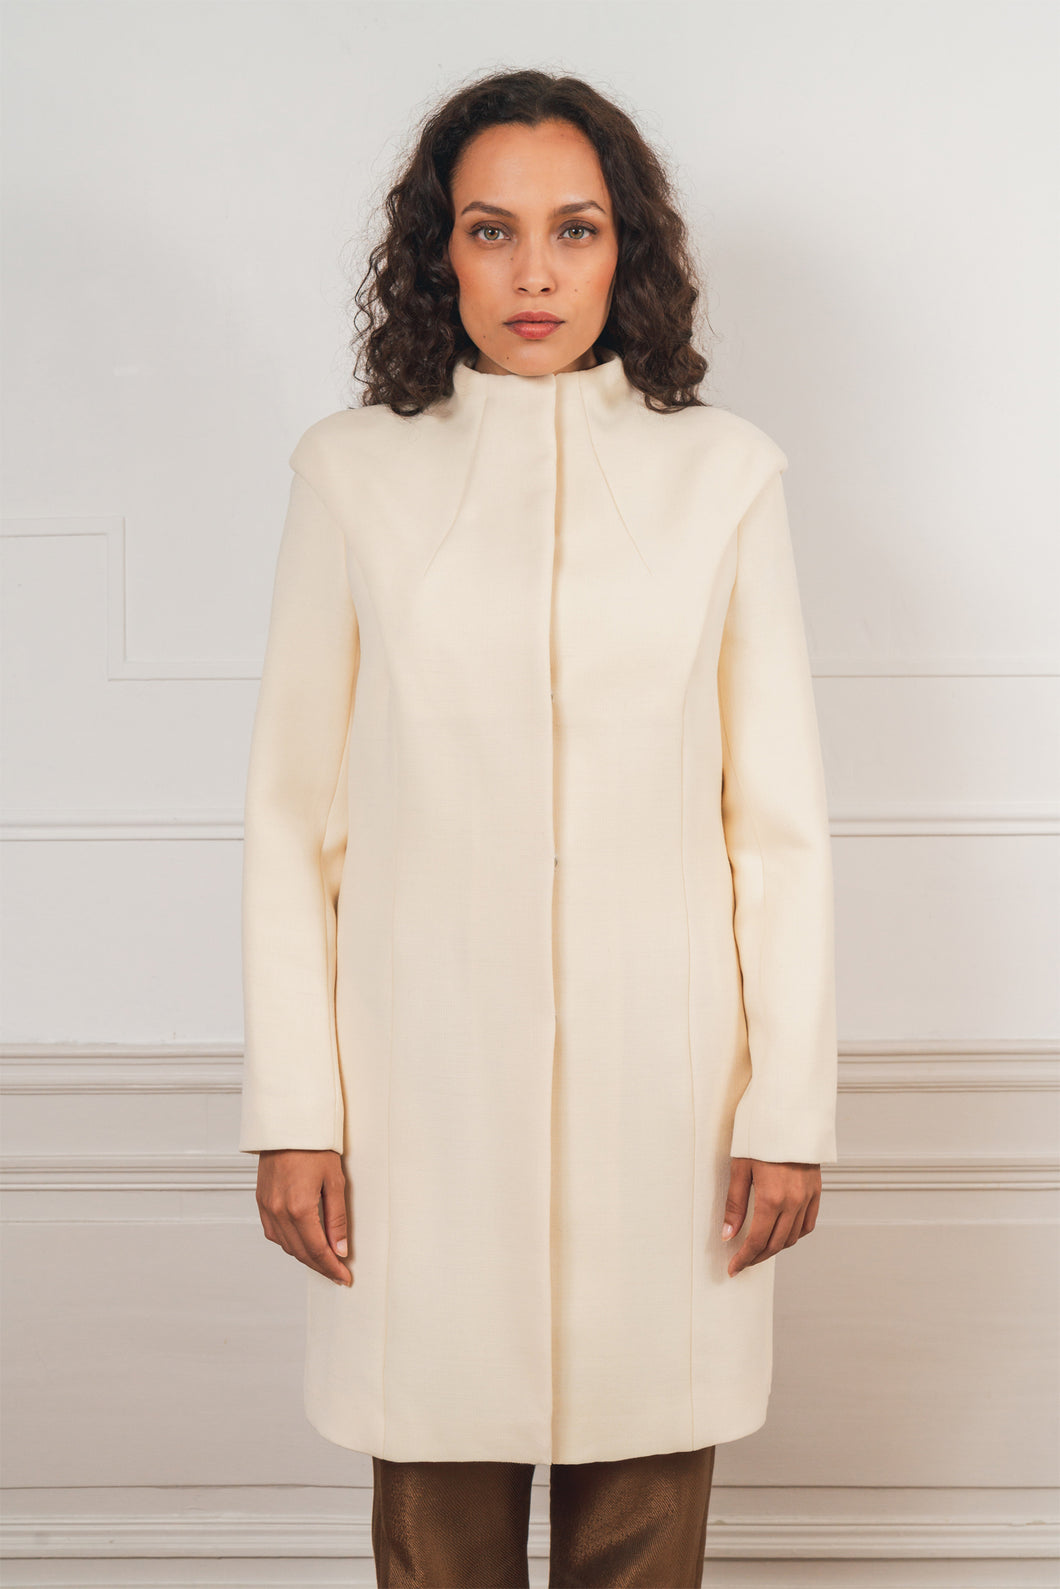 Manteau,, mode , éthique , mode éthique, vêtement, femme ,sustainable , ethical , ethical fashion , responsible sourcing , mode respectueuse , made in France , fabrique en France, made paris , fabrique a paris , local , mode local , acheter local , buy local , brand , fashion , style , classic , elegant , women , mode feminine, , french brand , french designer , prêt a porter, ready to wear , parisienne , blouse